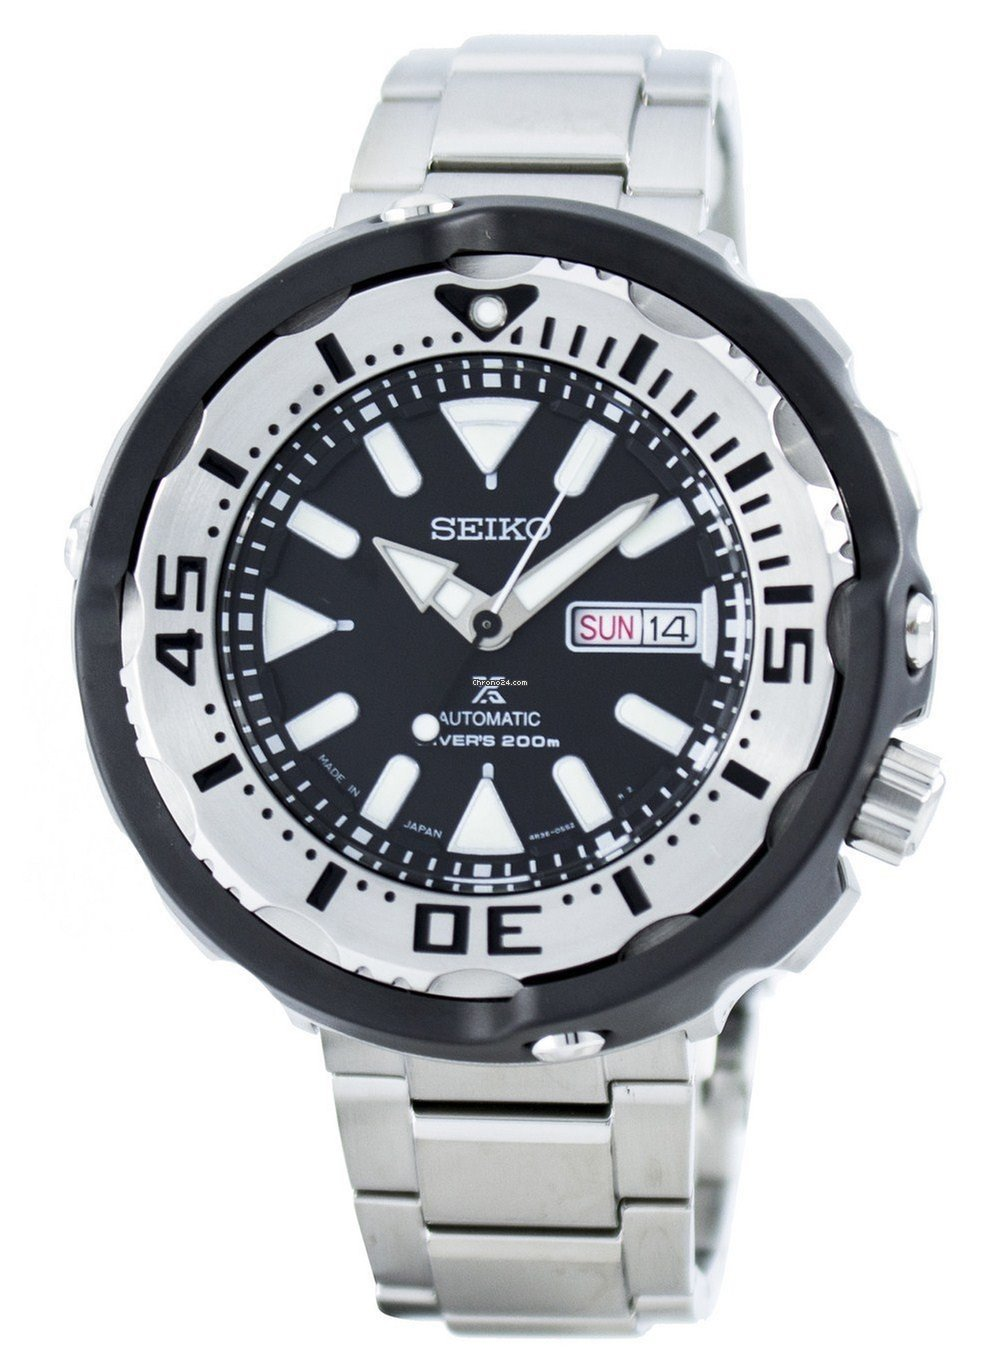 ea02b398675 Seiko Prospex Automatic Scuba Diver s Japan Made 200M SRPA79... for  423  for sale from a Seller on Chrono24